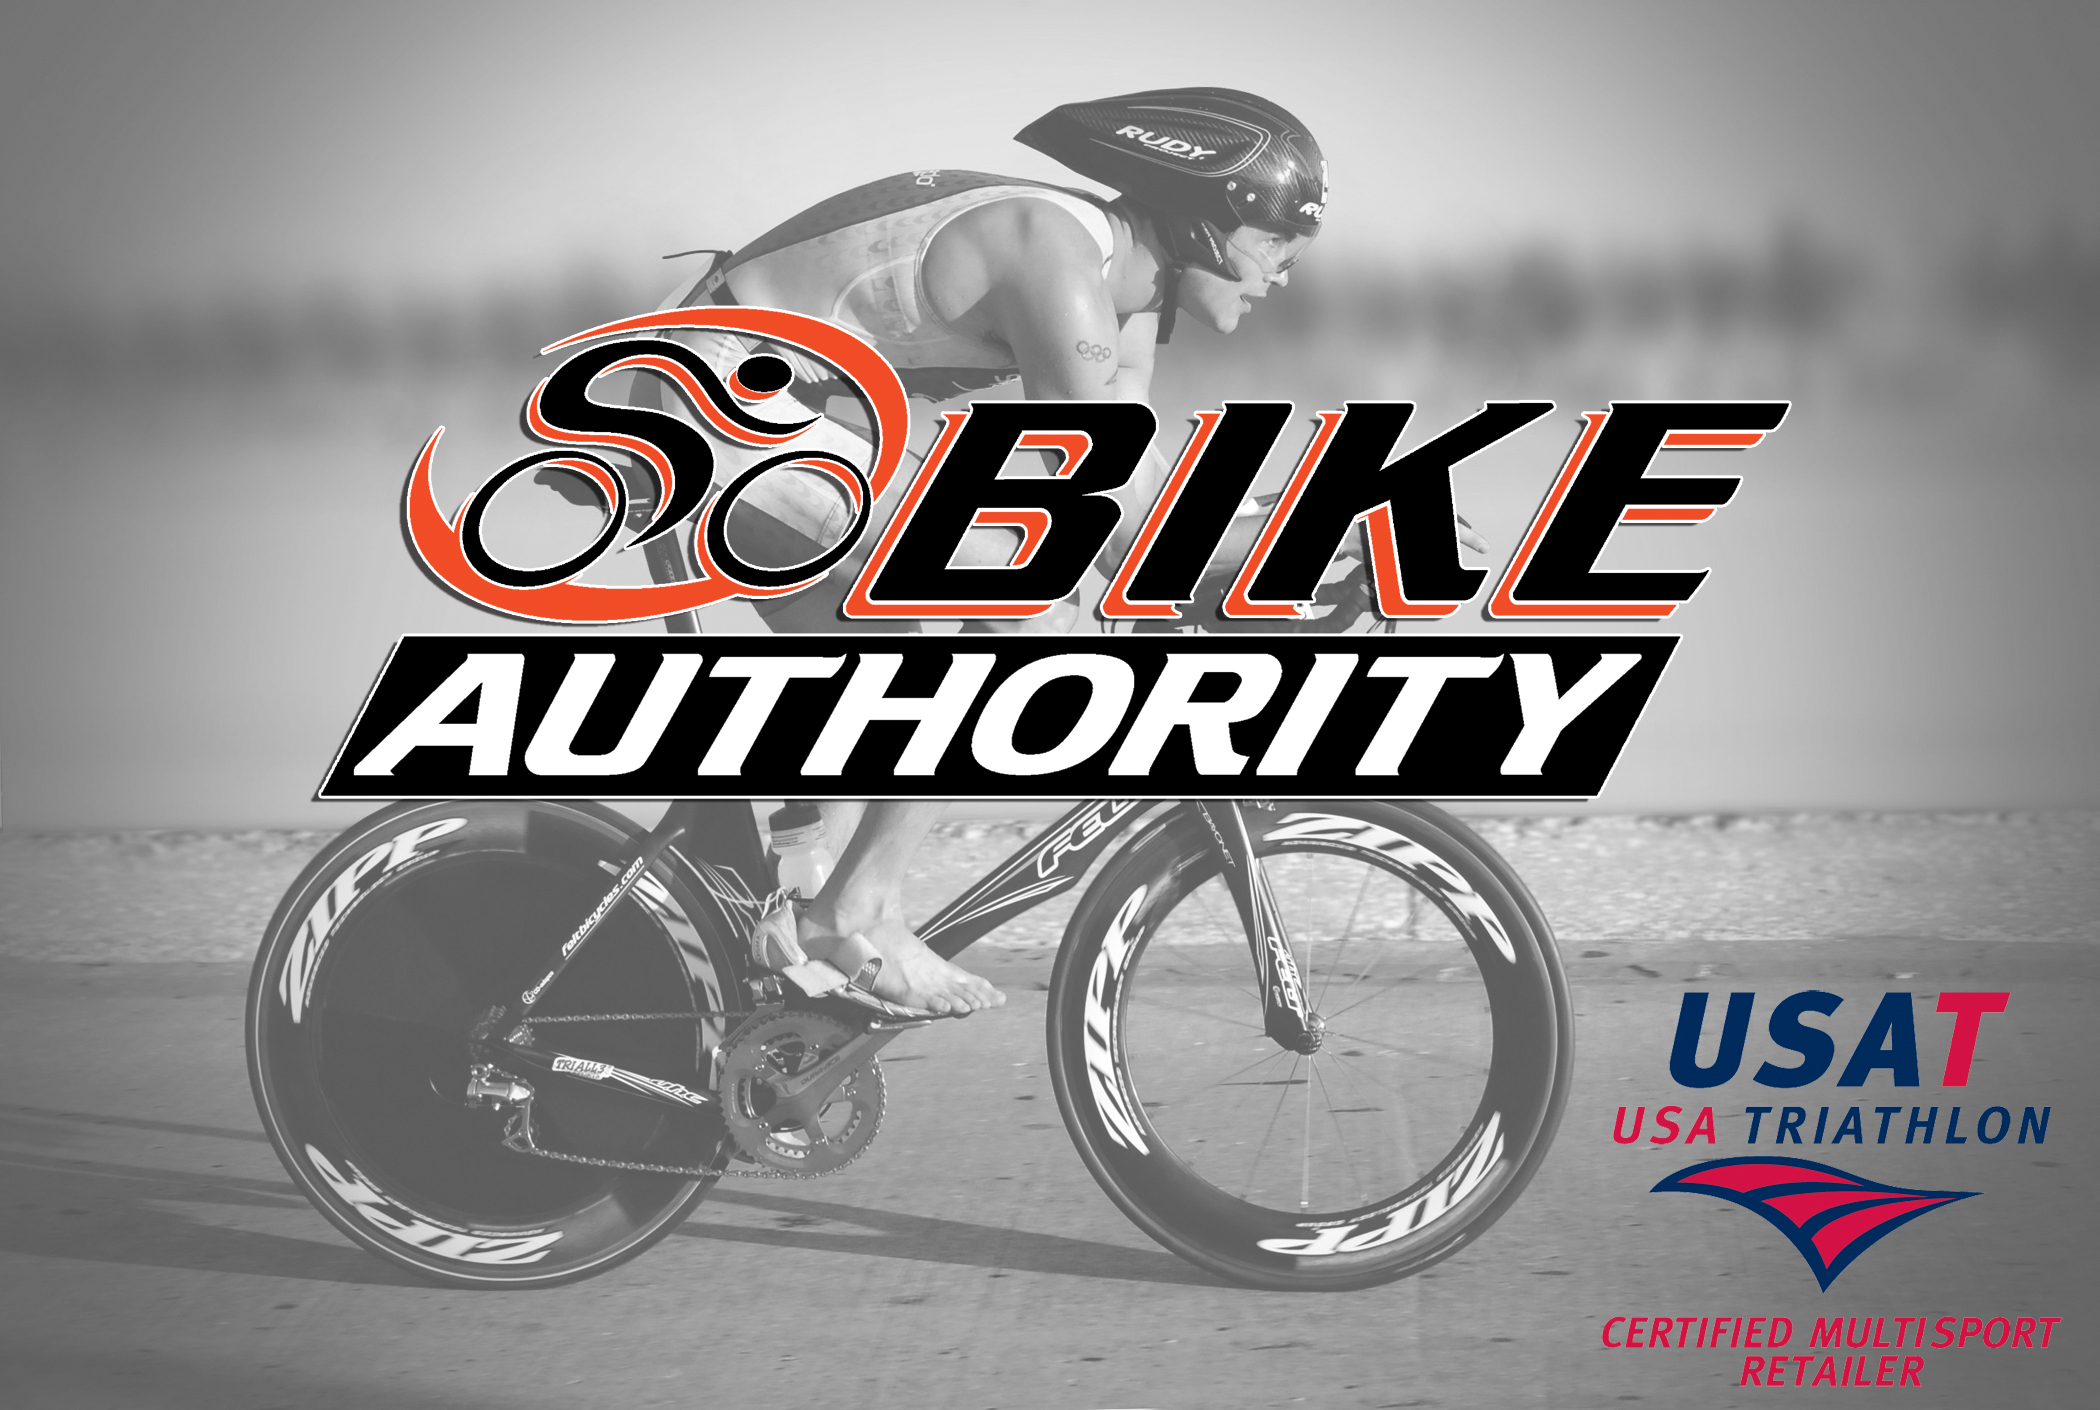 Bike Authority is a USAT certified Multisport retailer